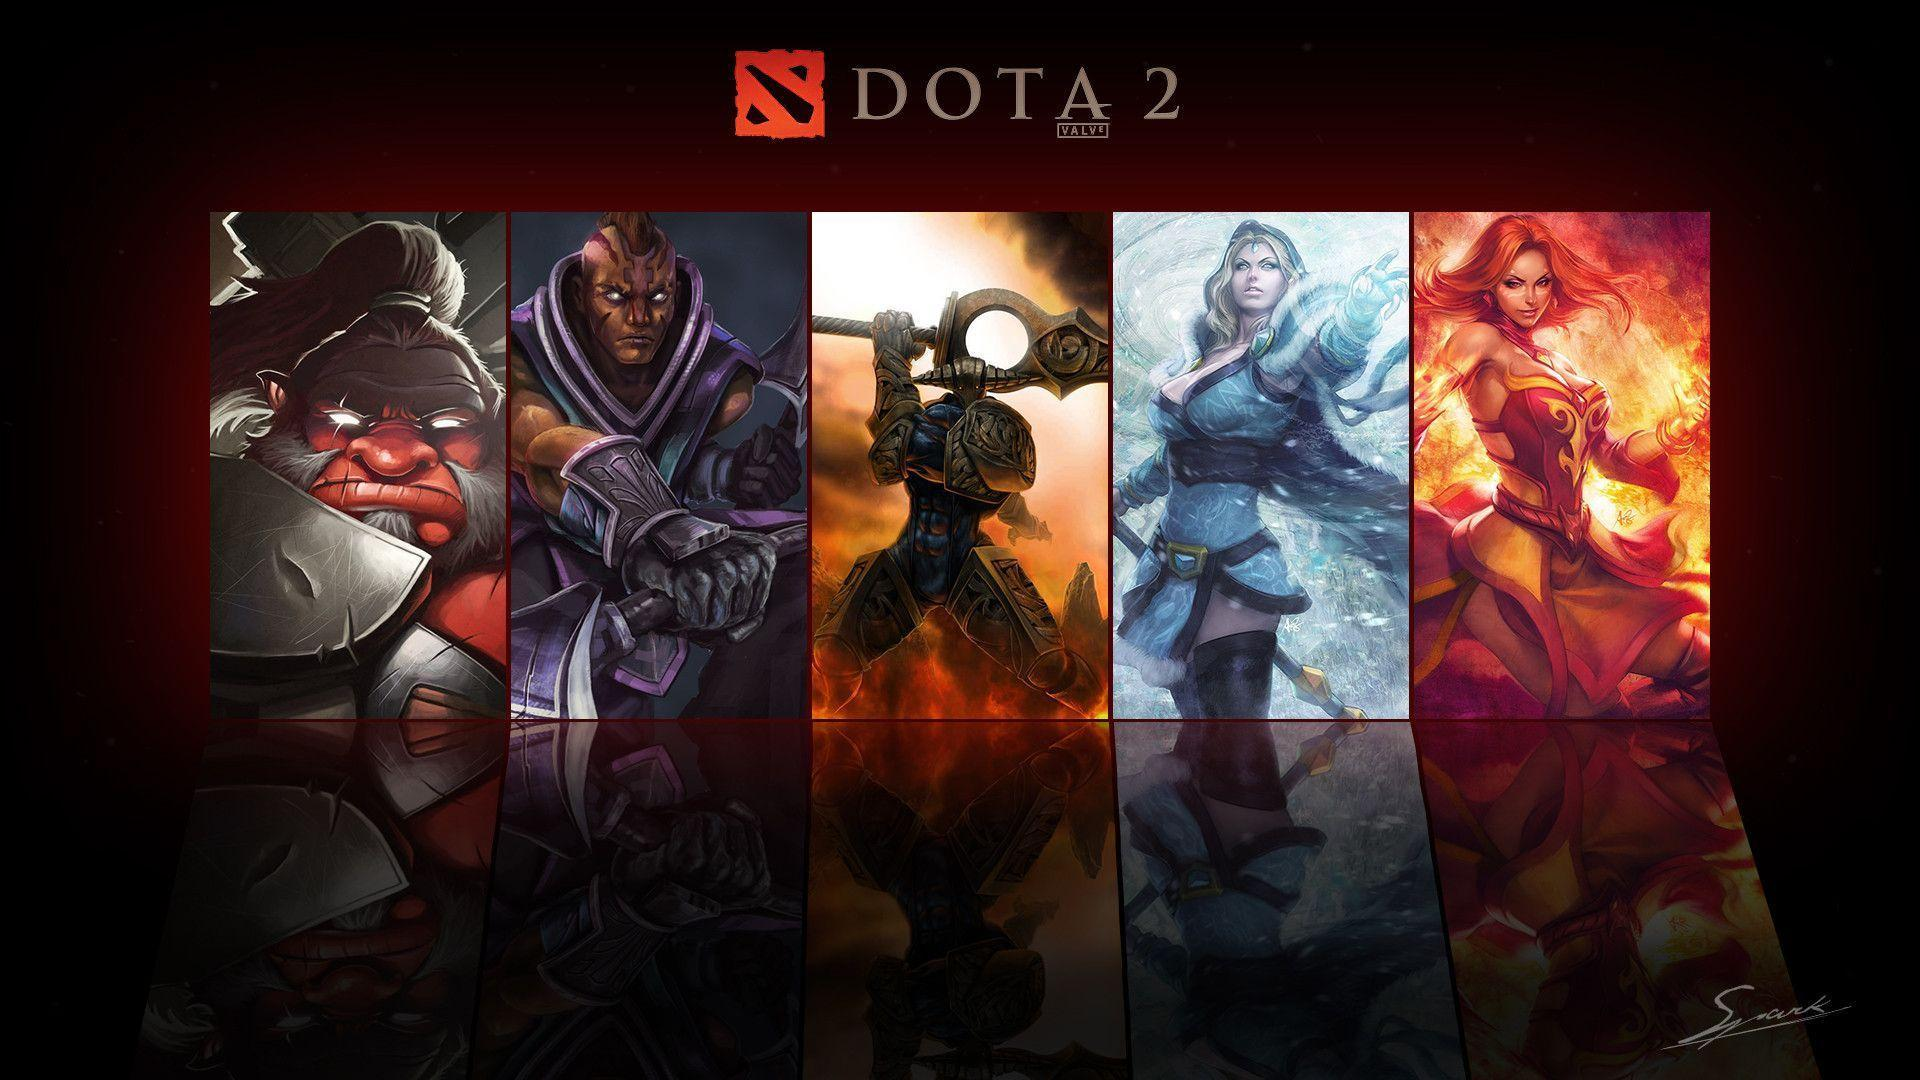 Dota 2 Wallpapers Wallpaper Cave